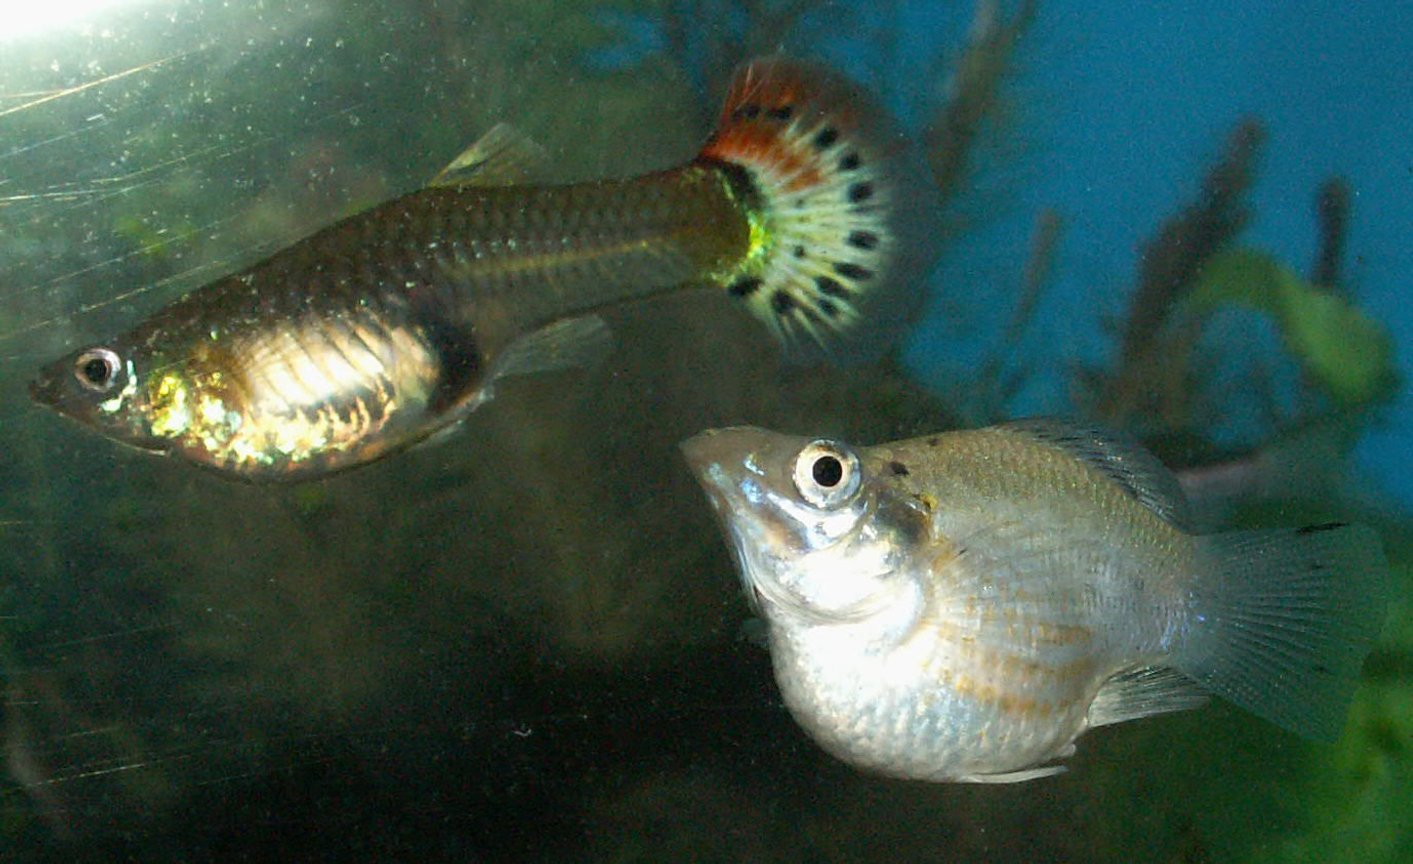 freshwater fish - poecilia latipinna - balloon molly stocking in 110 gallons tank - Guppy and White Balloon Molly